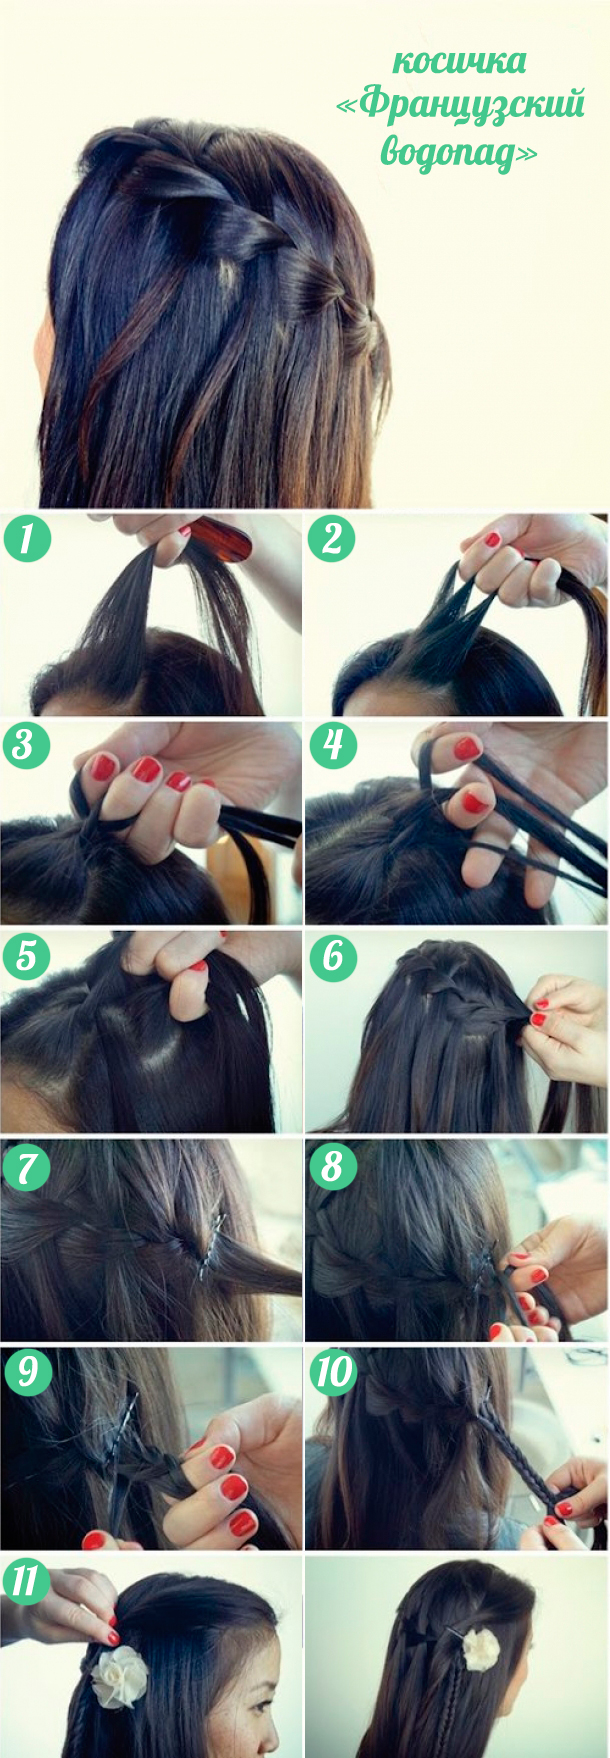 How_To_Braid_Hair_2